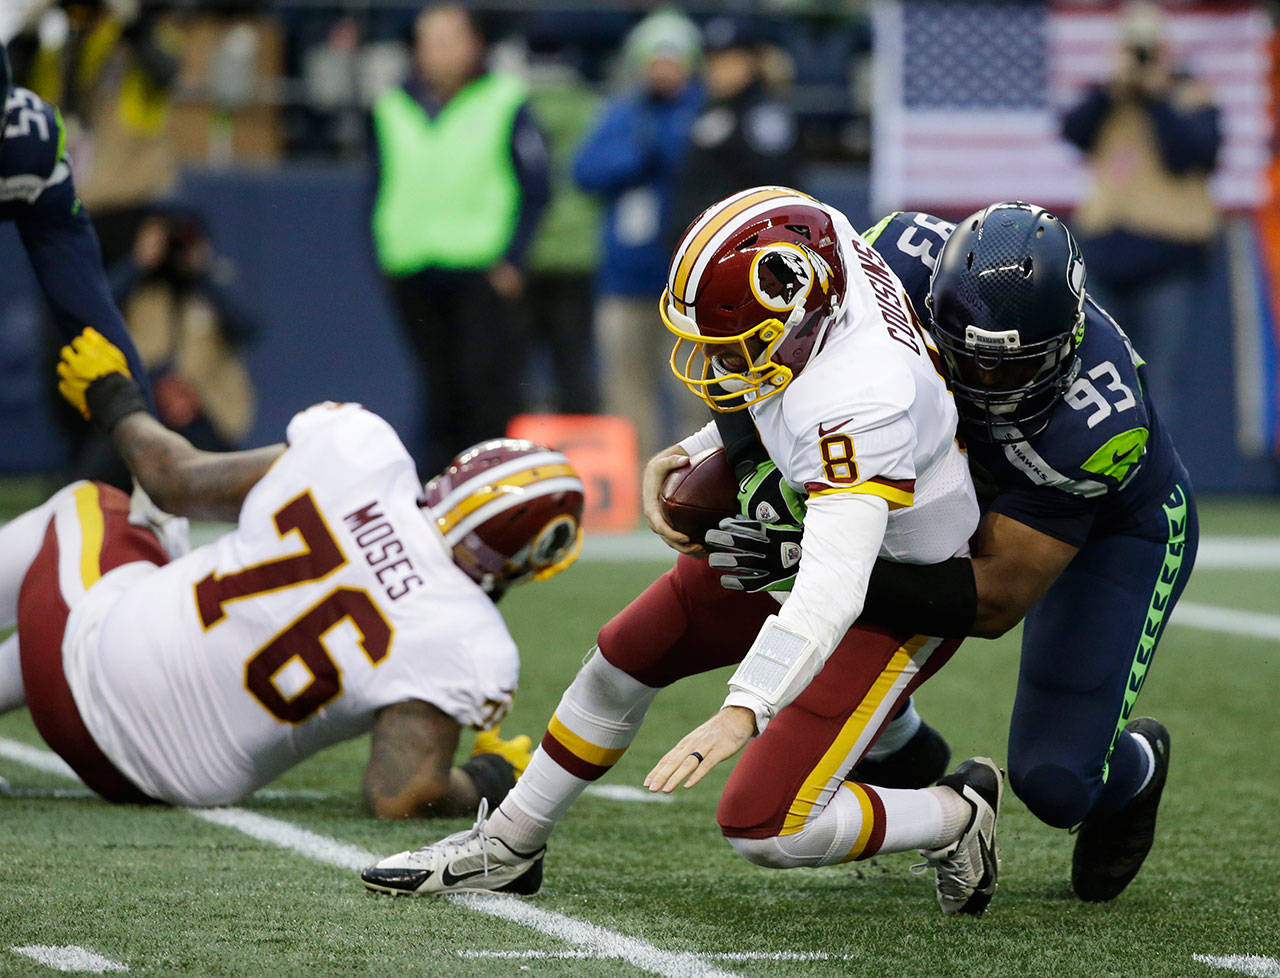 Seahawks defensive end Dwight Freeney (93) sacks Redskins quarterback Kirk Cousins (8) in the second half of a game Nov. 5, 2017, in Seattle. (AP Photo/Elaine Thompson)